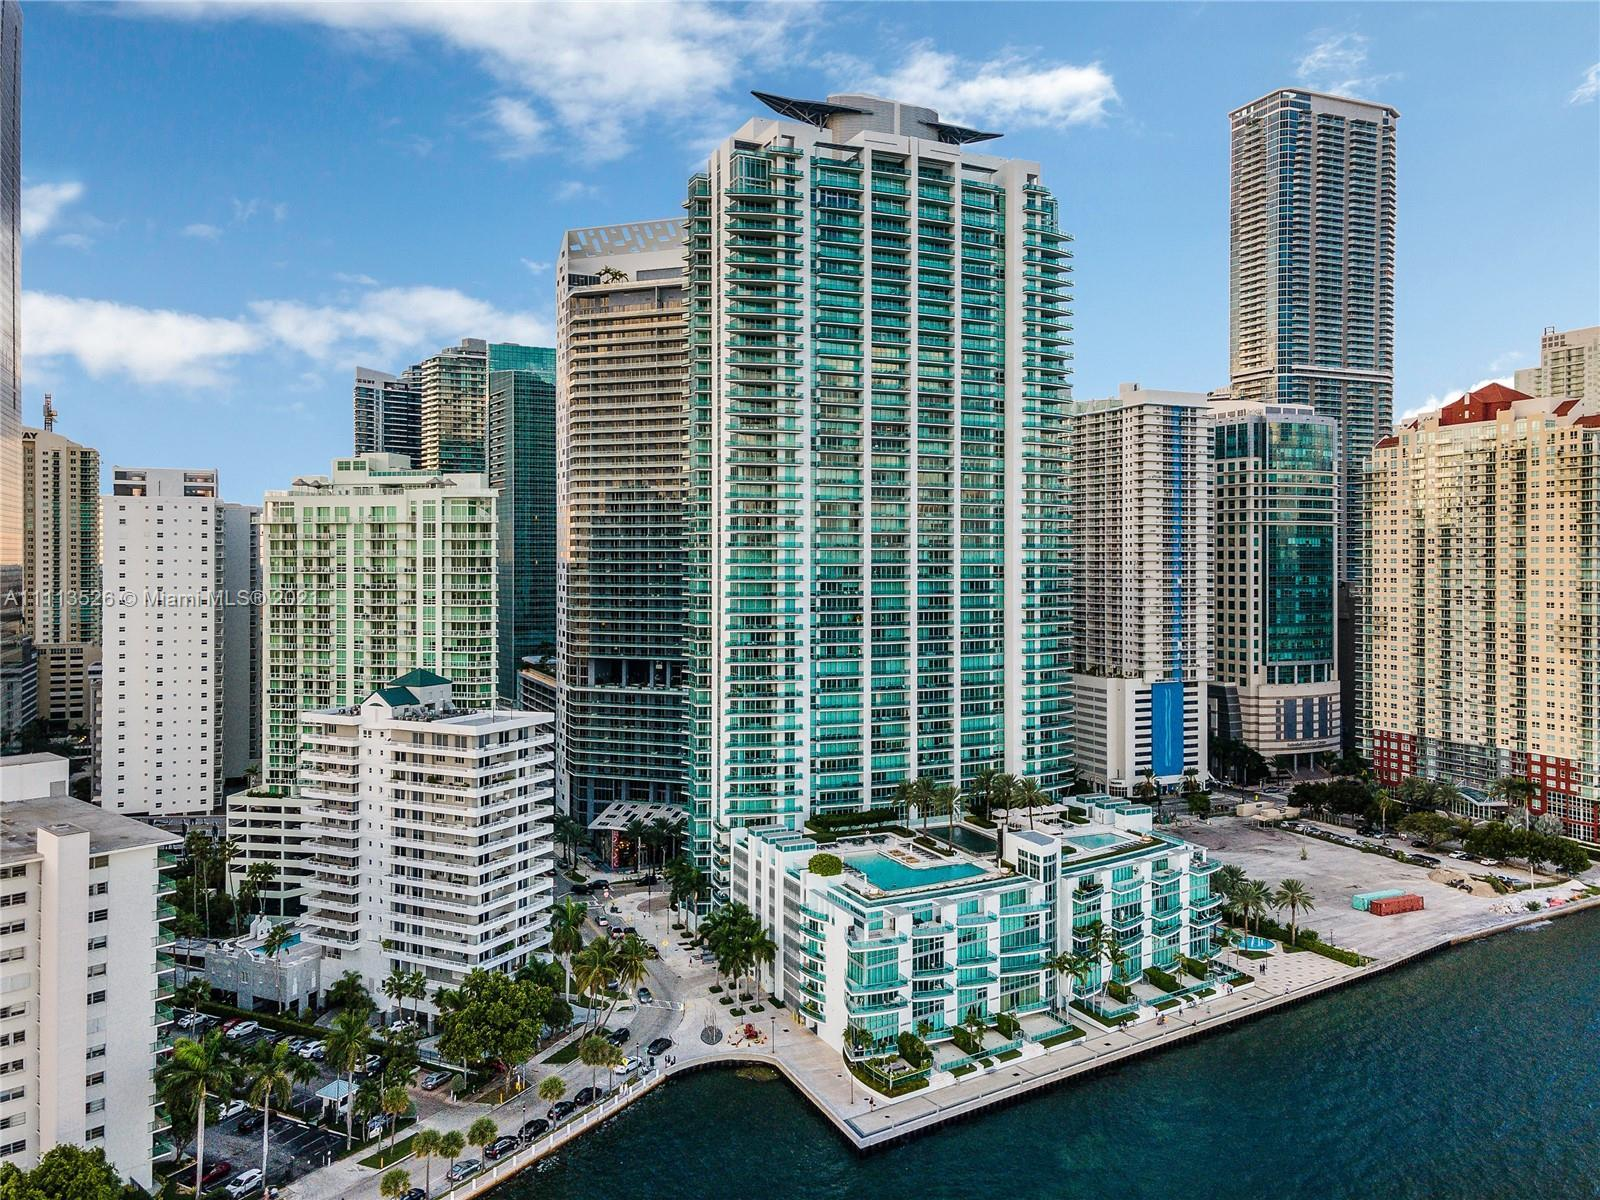 The most desirable line at Jade Brickell! Clearing all neighboring buildings, this southeast corner